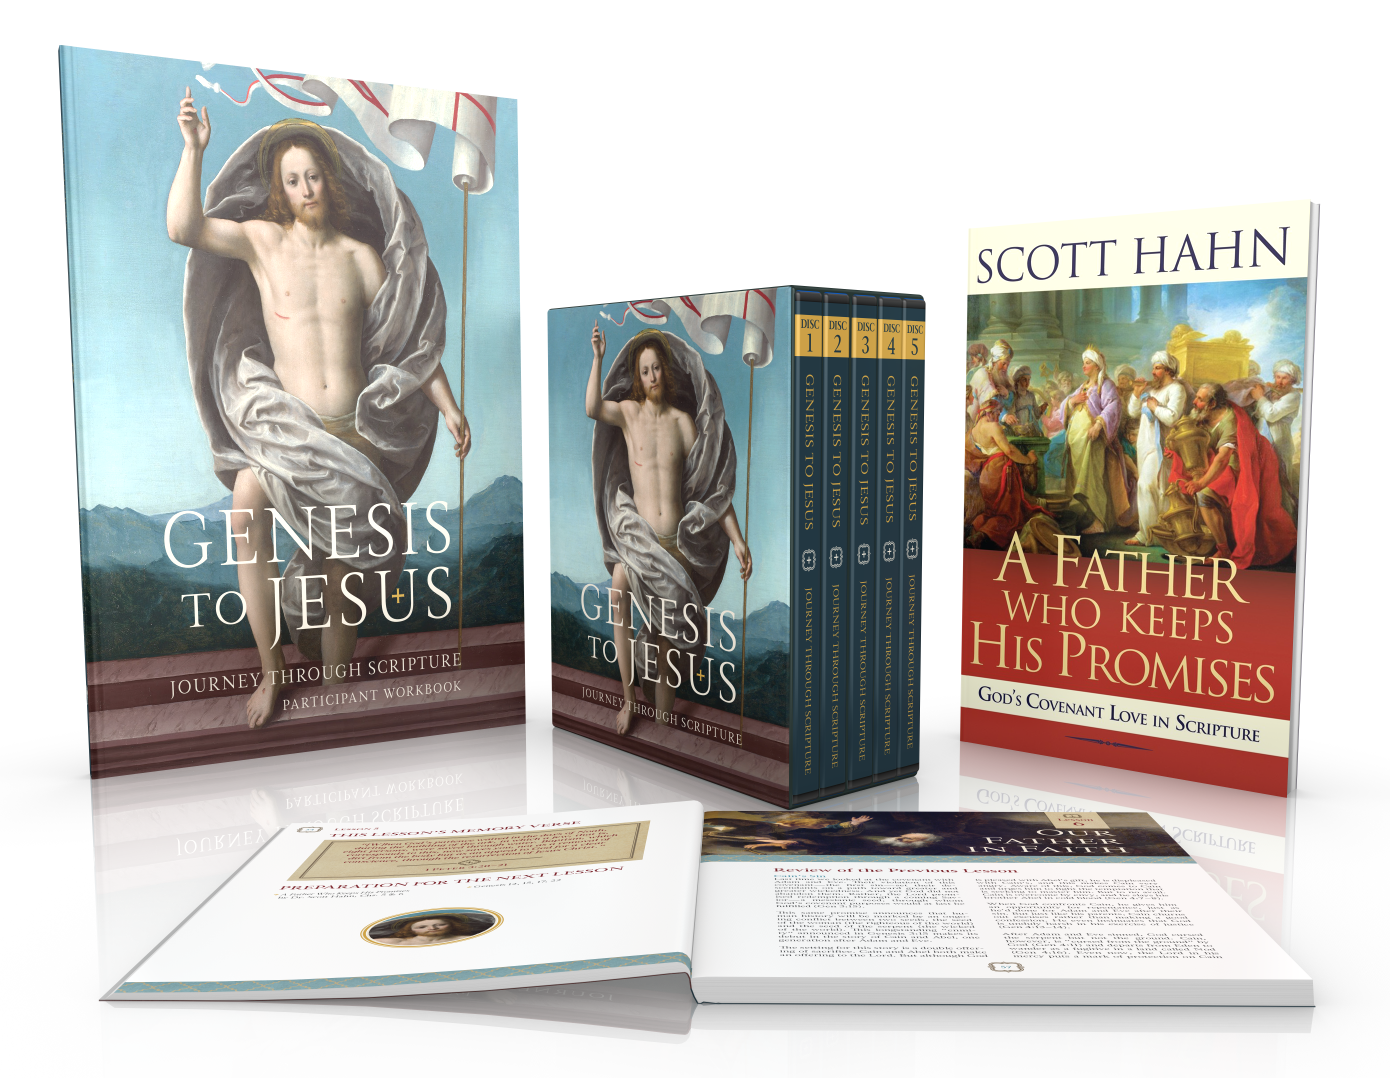 Genesis to Jesus - Complete Package for Parishes